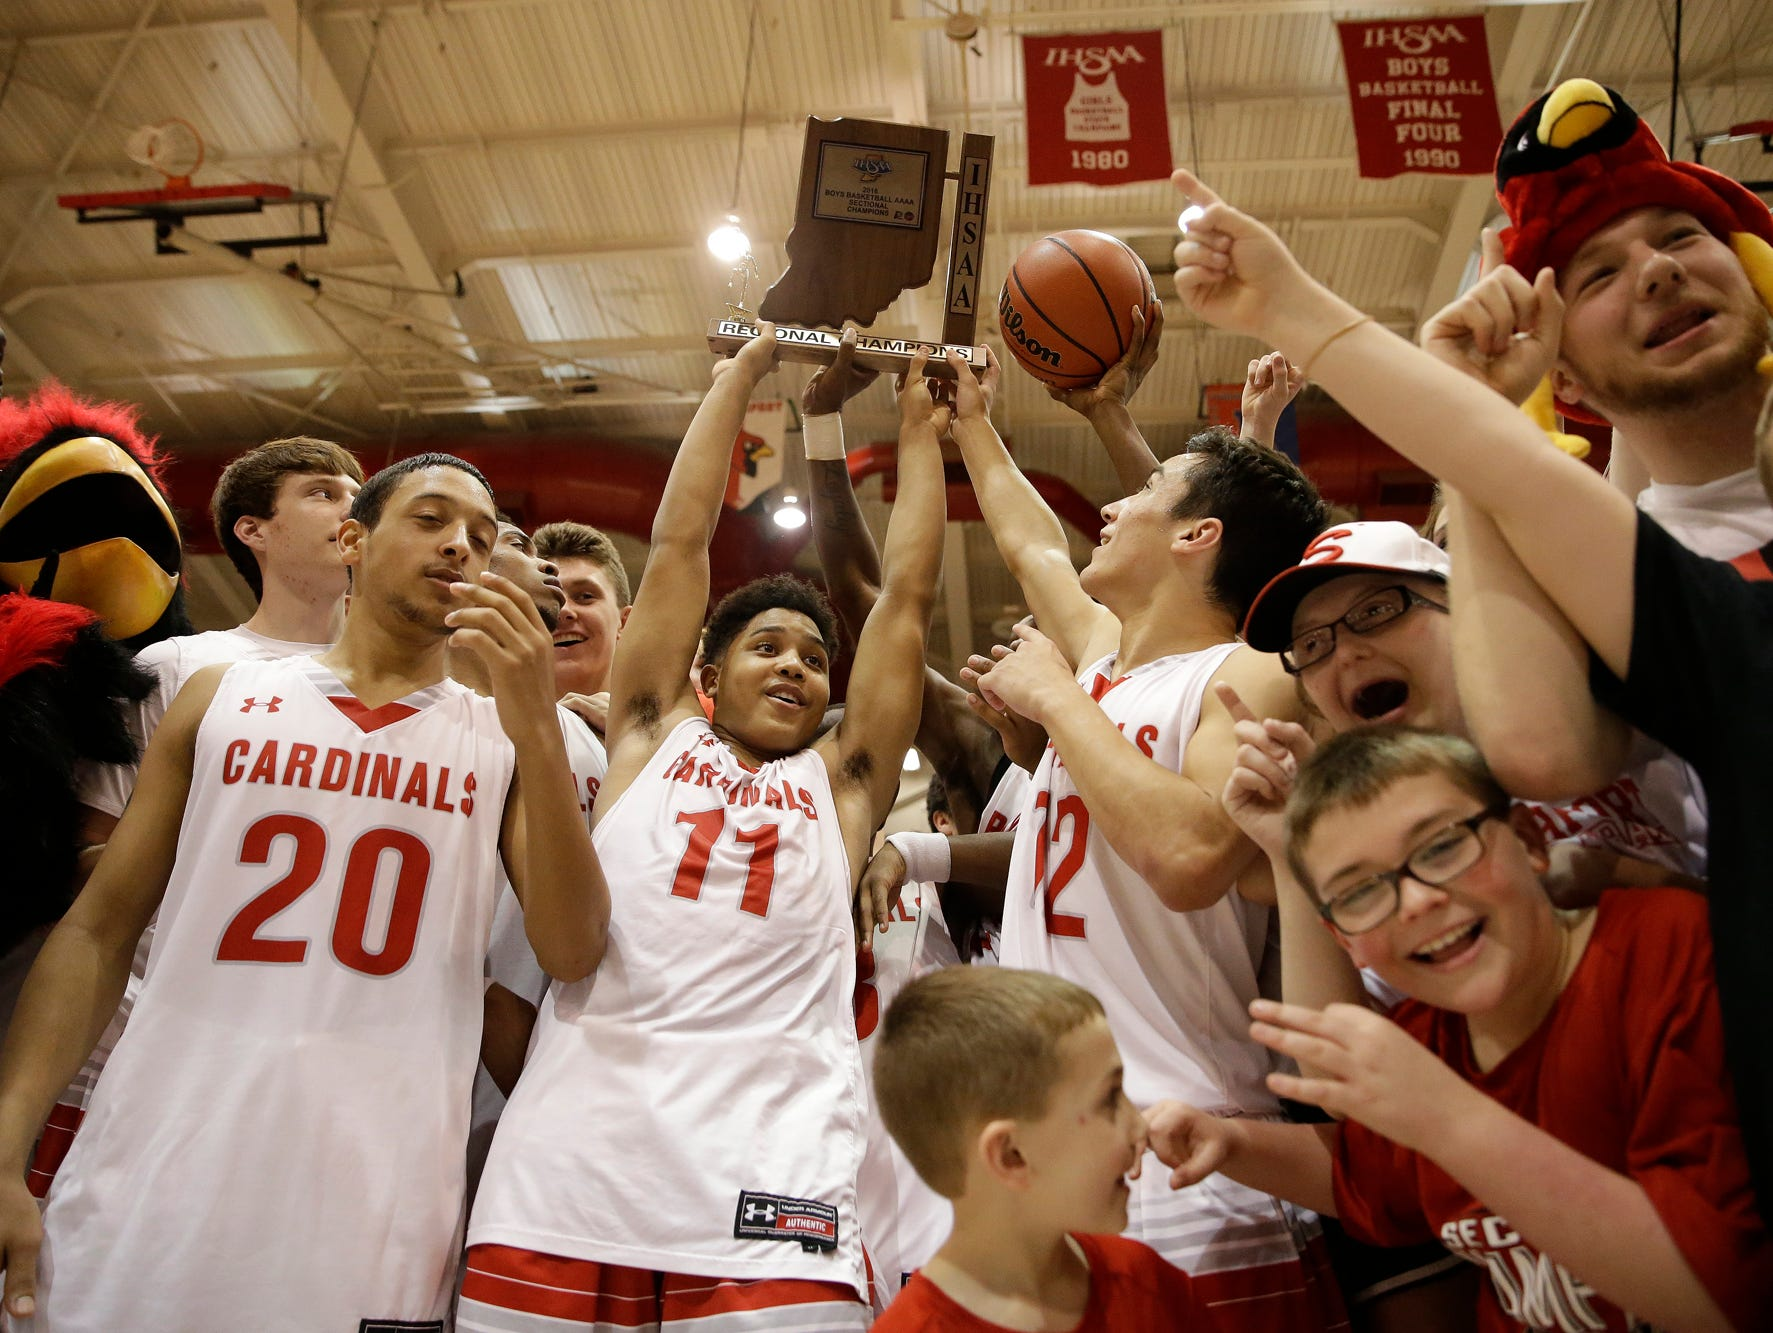 The Southport boys basketball team celebrates their regional championship against Terre Haute South at Southport High School in Indianapolis on March 12, 2016.